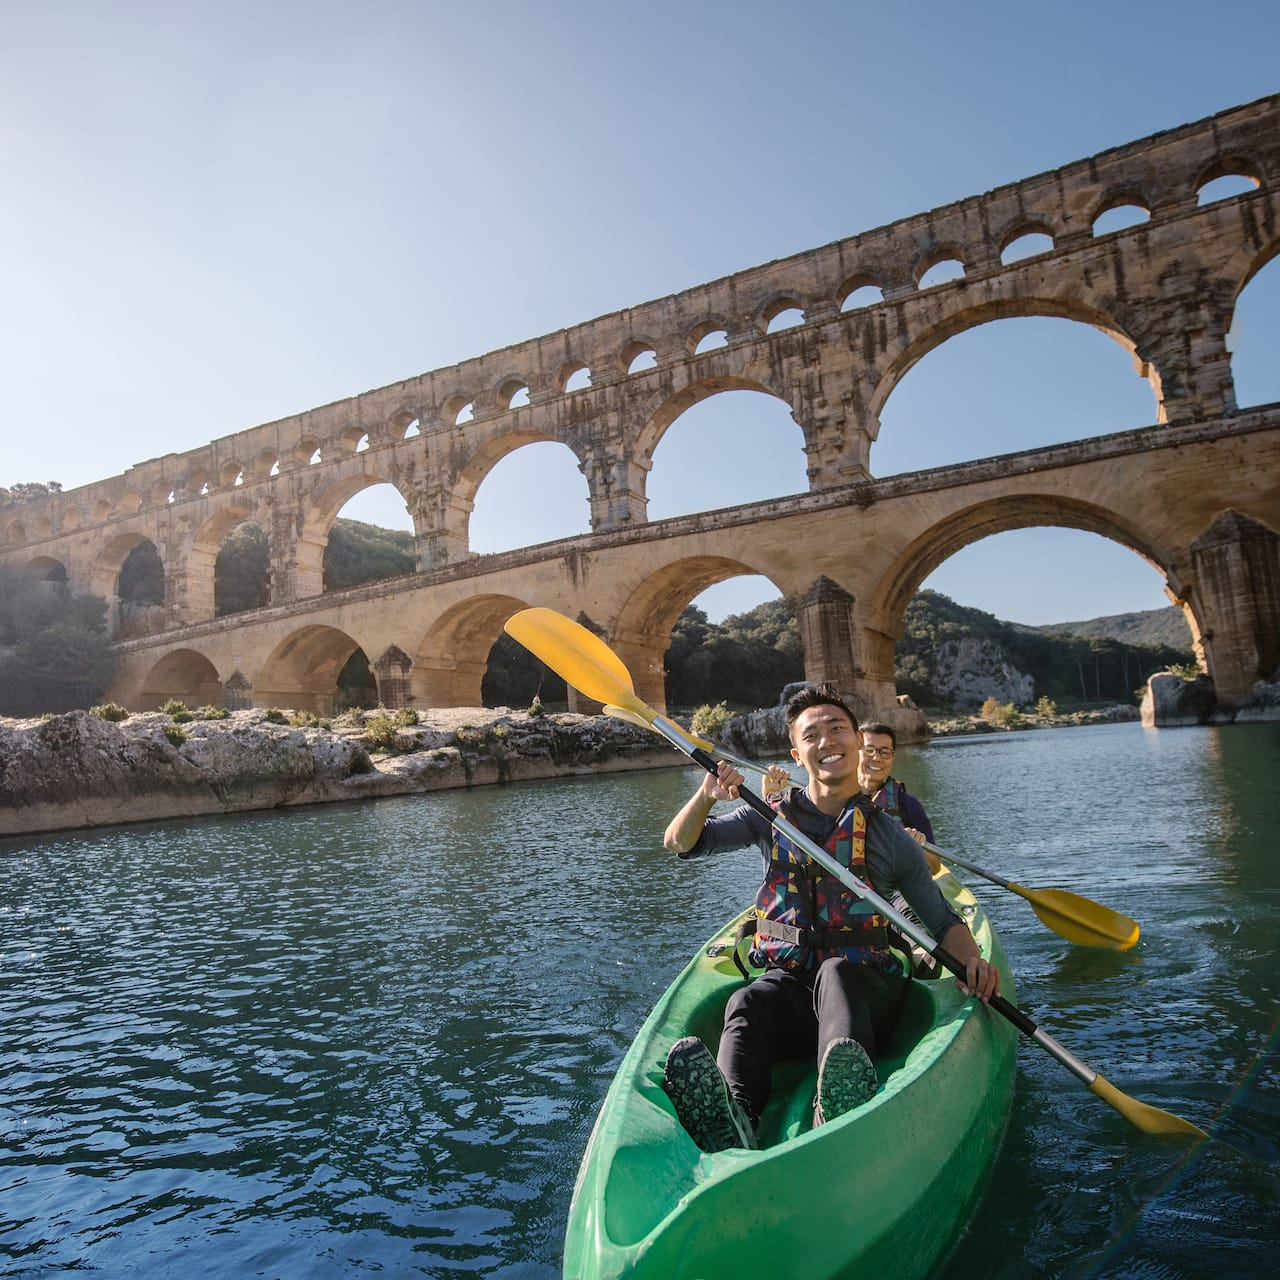 A pair of Adventurers kayak in the river near the Pont du Gard acqueduct